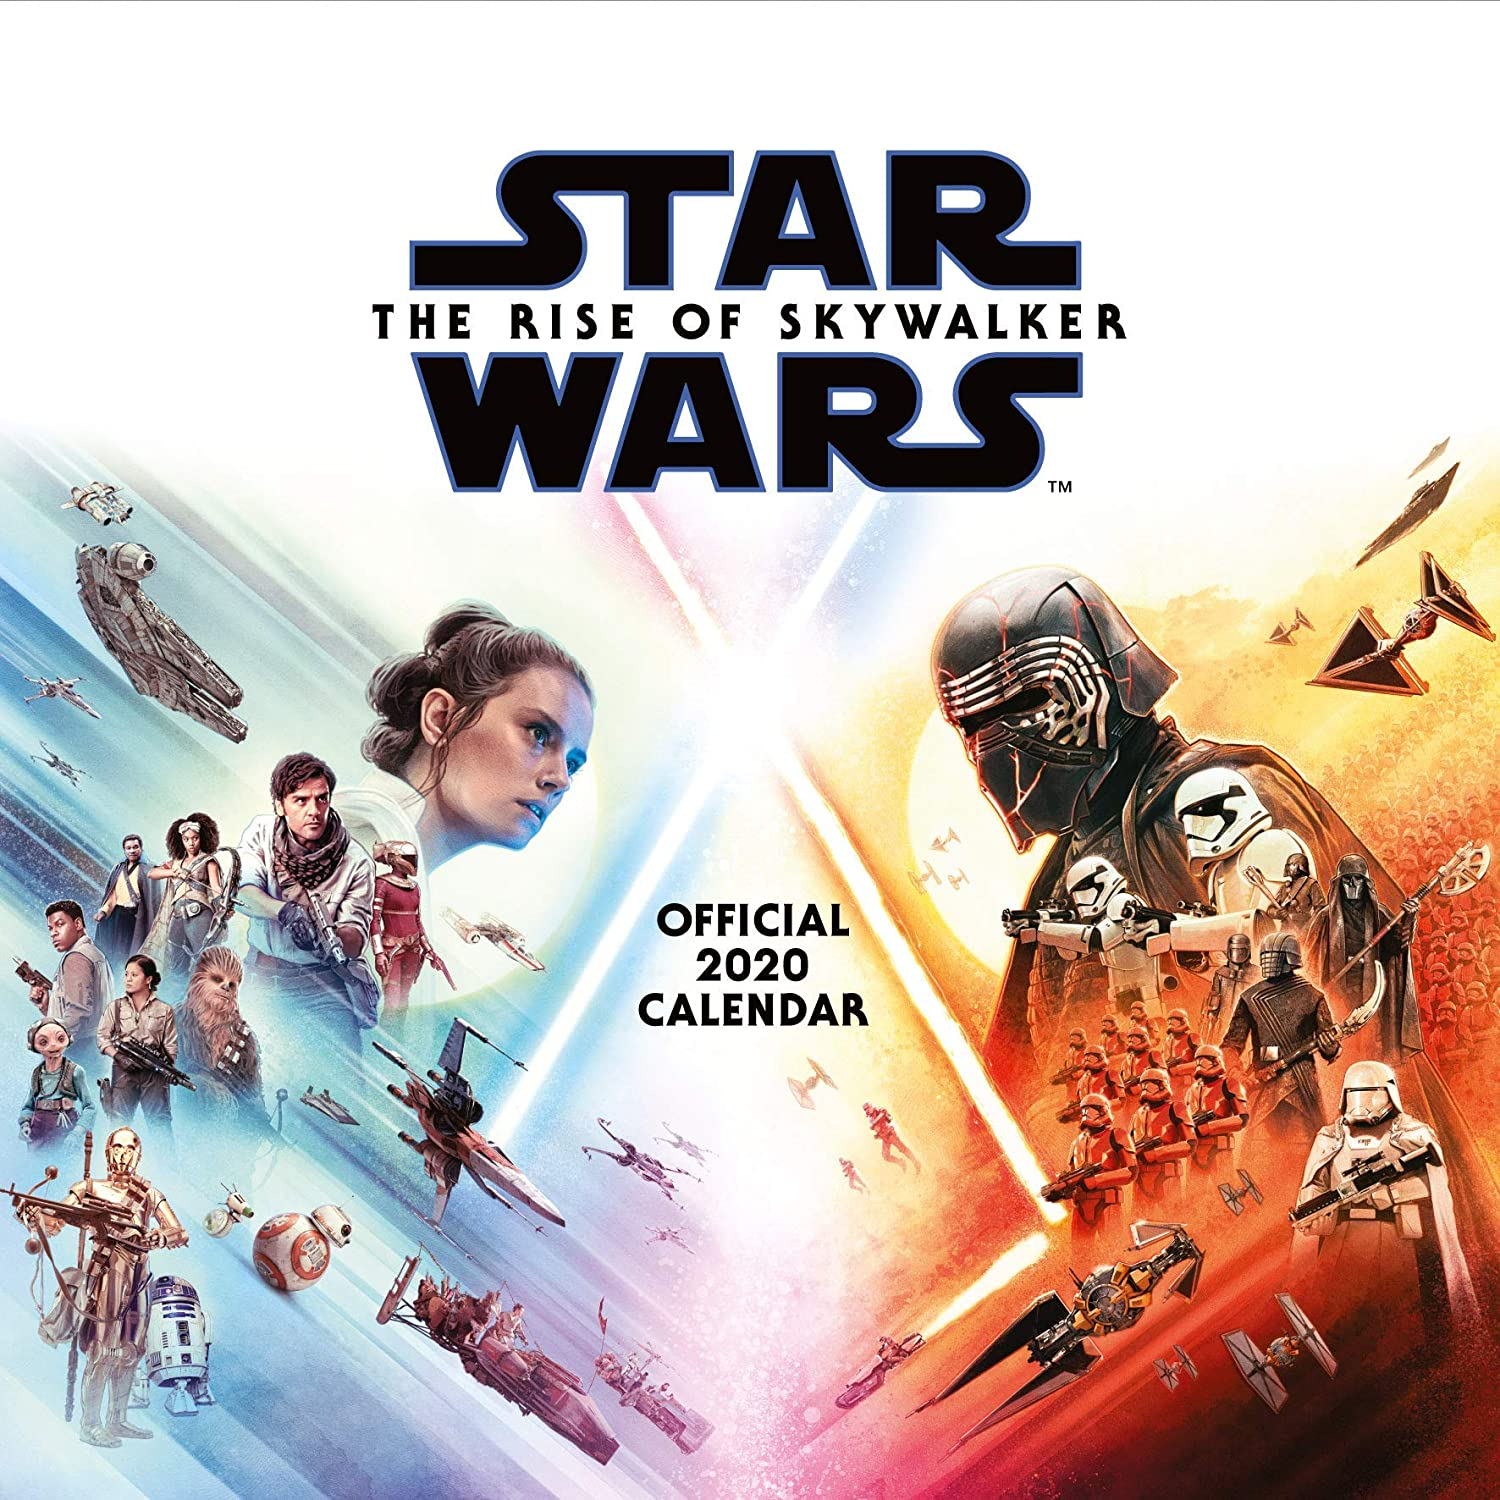 Star Wars The Rise of Skywalker 2019 English 480p WEB-DL 400MB ESubs